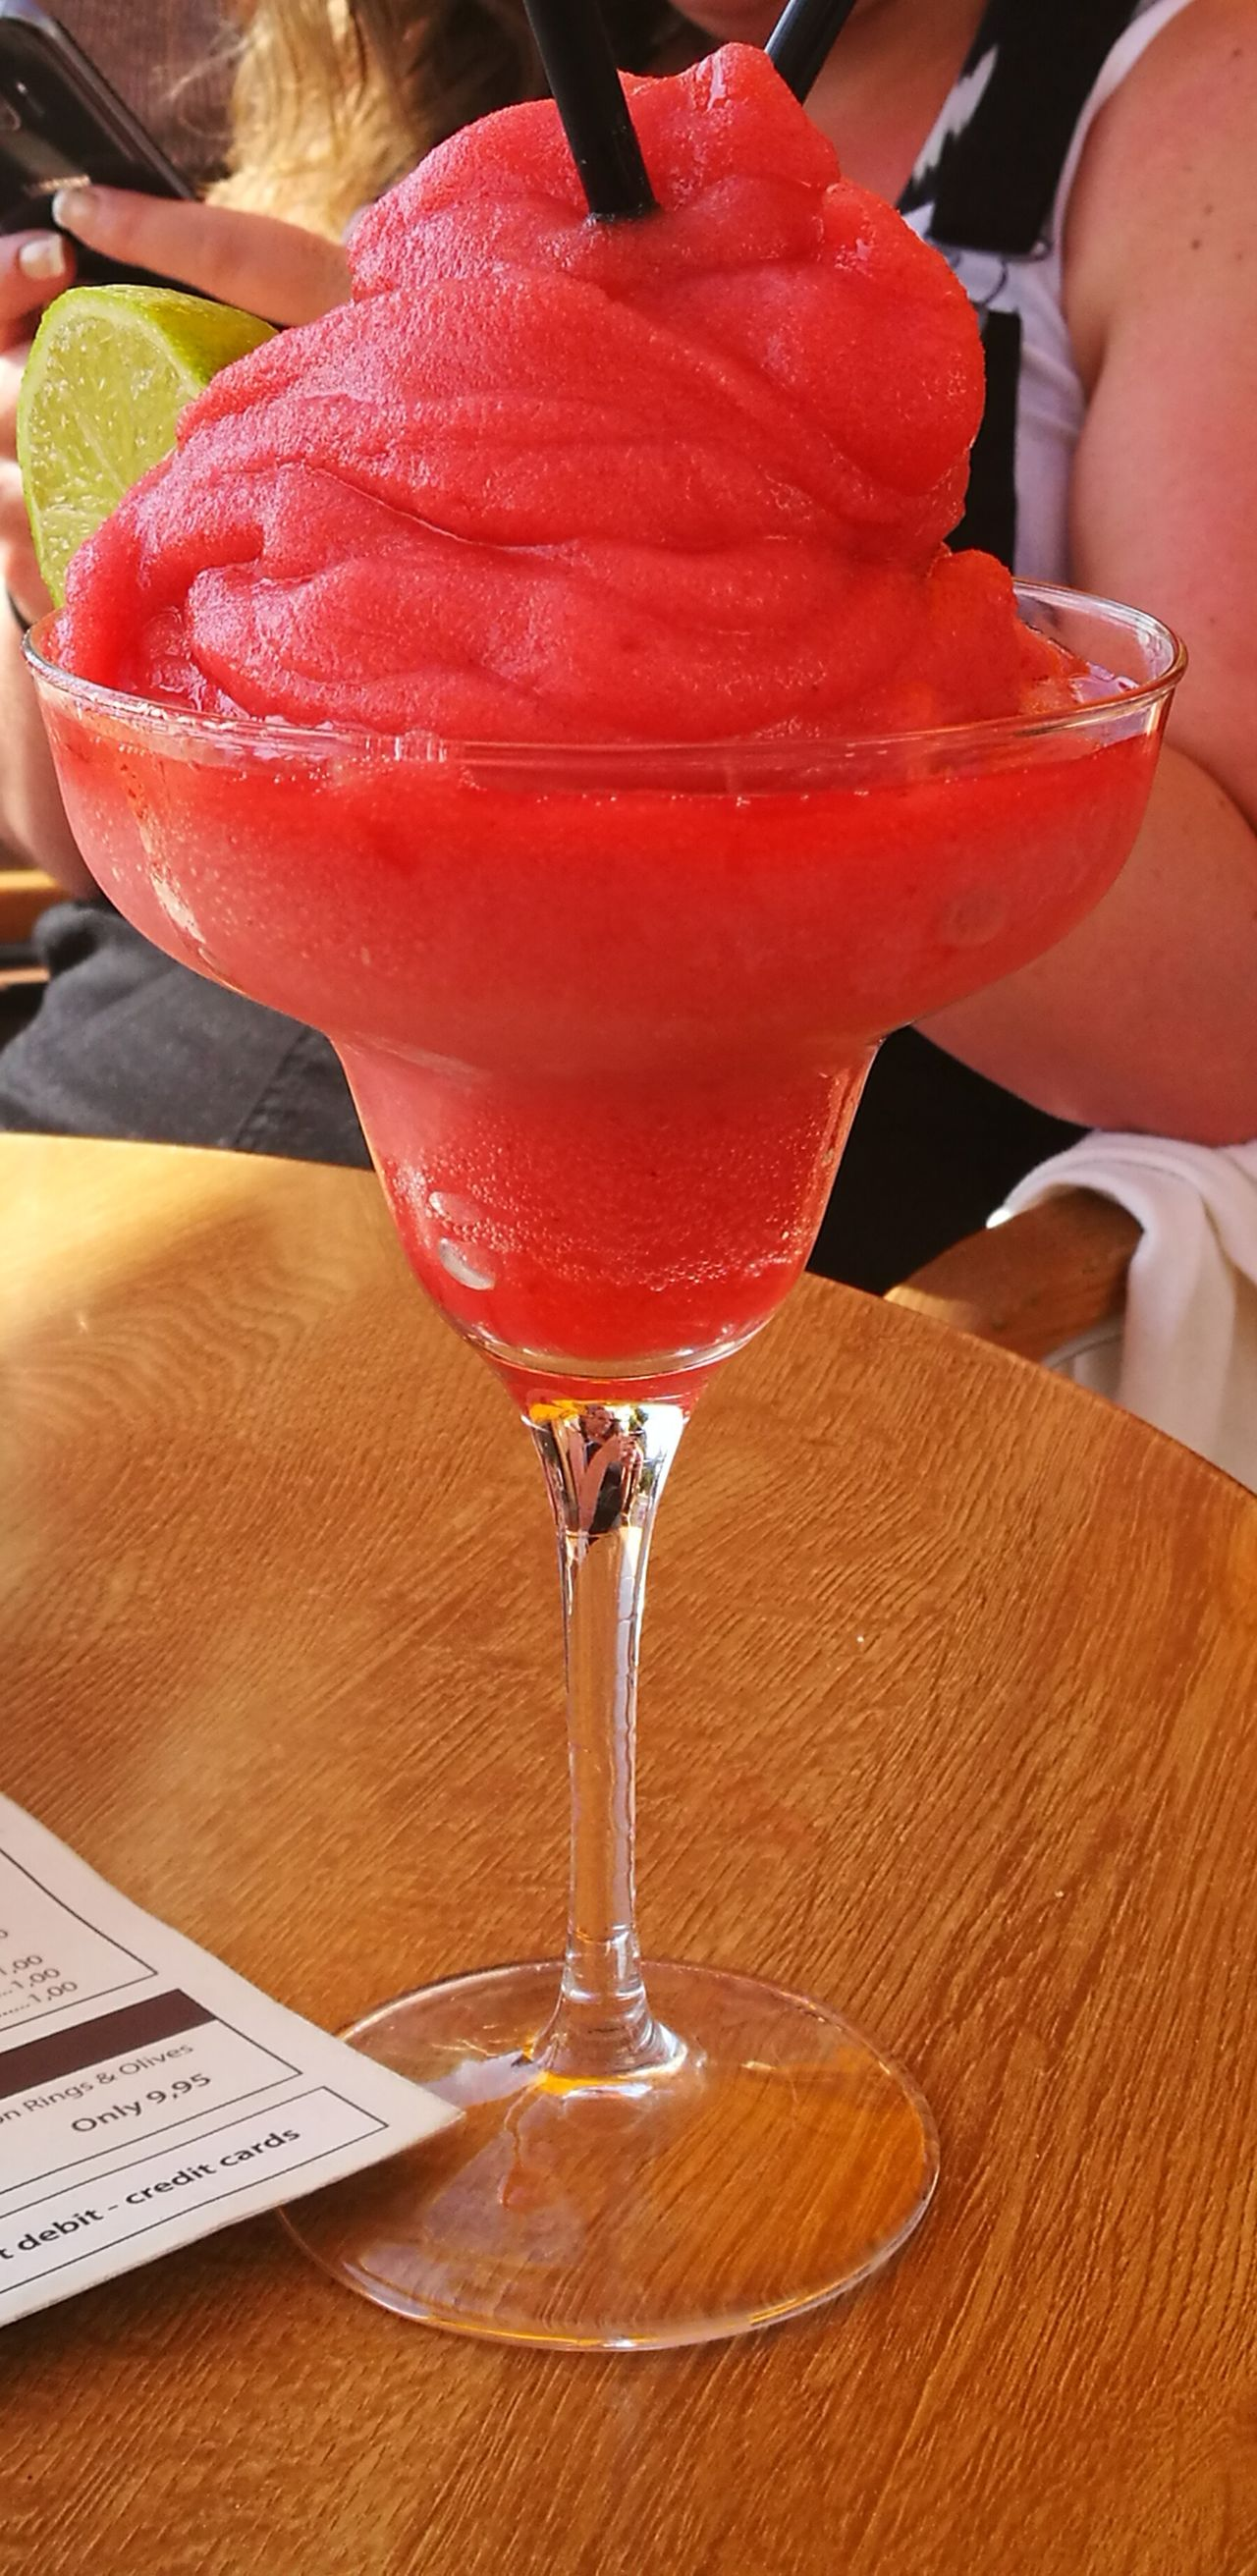 Cocktails🍹🍸 Alcohol Strawberry Daiquiri  Drink